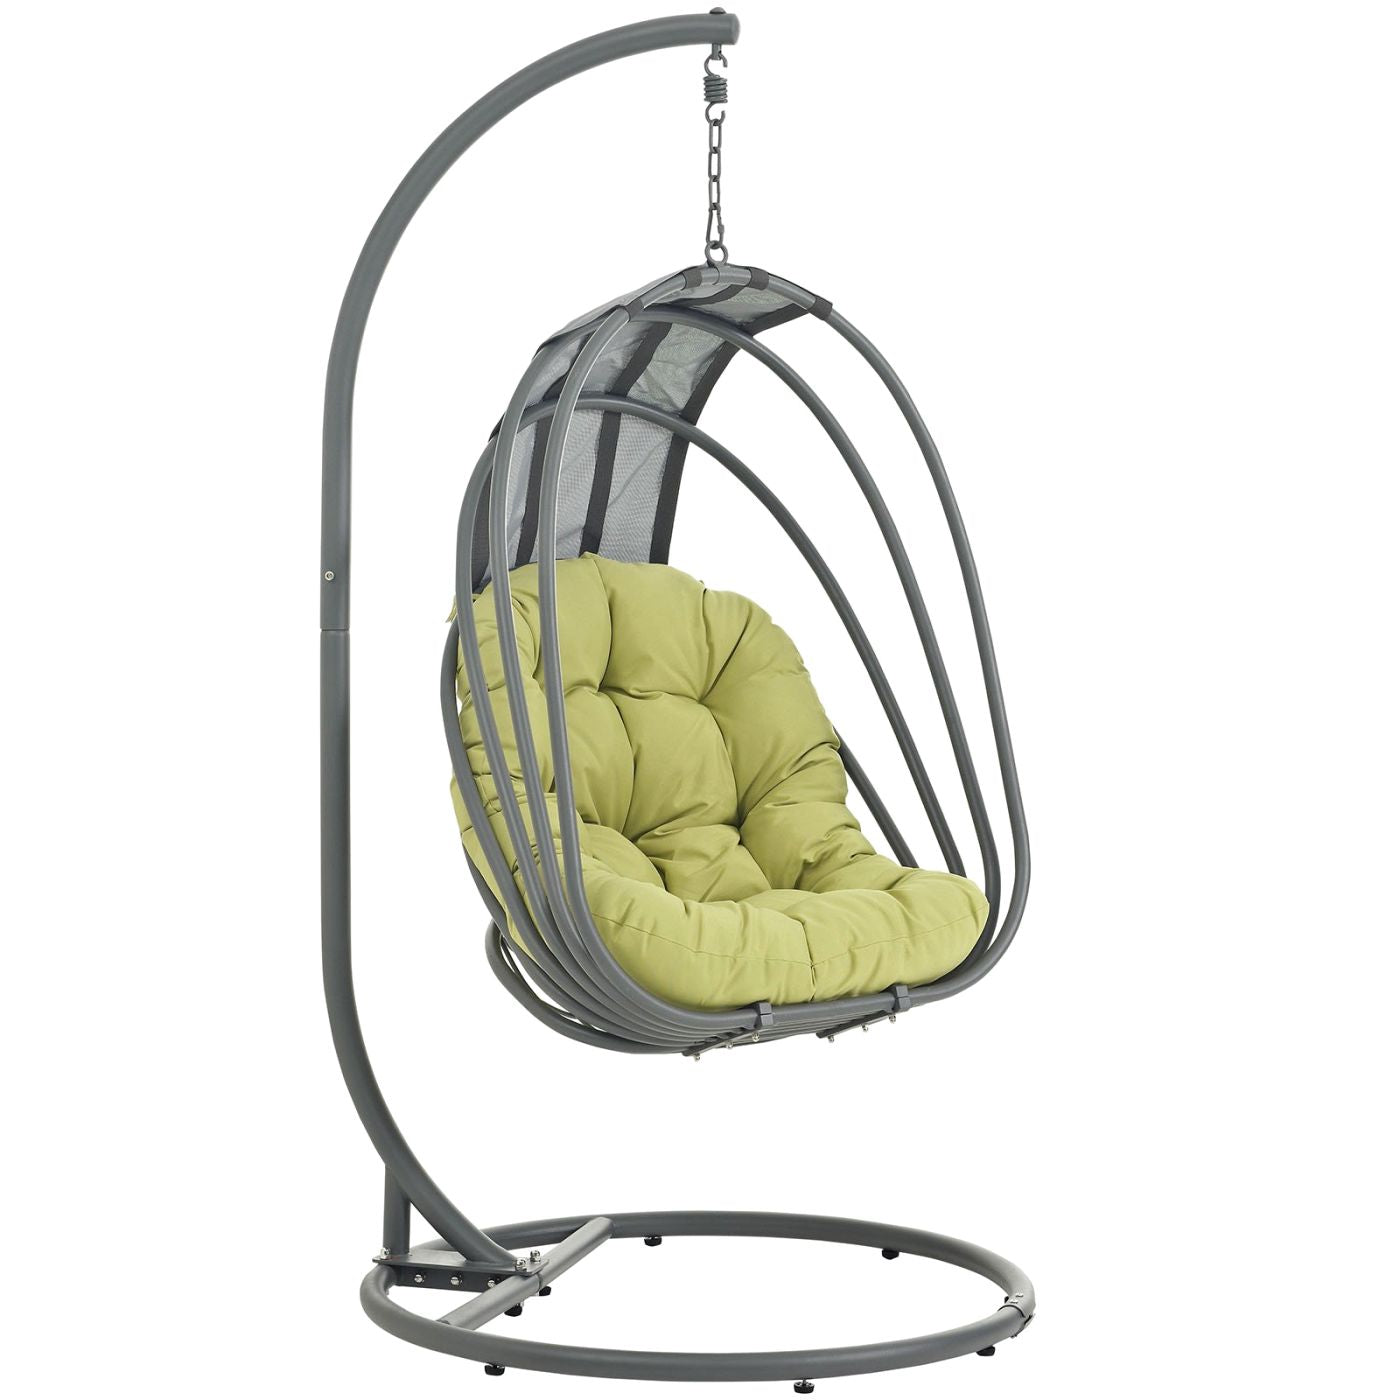 Whisk Outdoor Patio Swing Chair With Stand Peridot Lounge ...